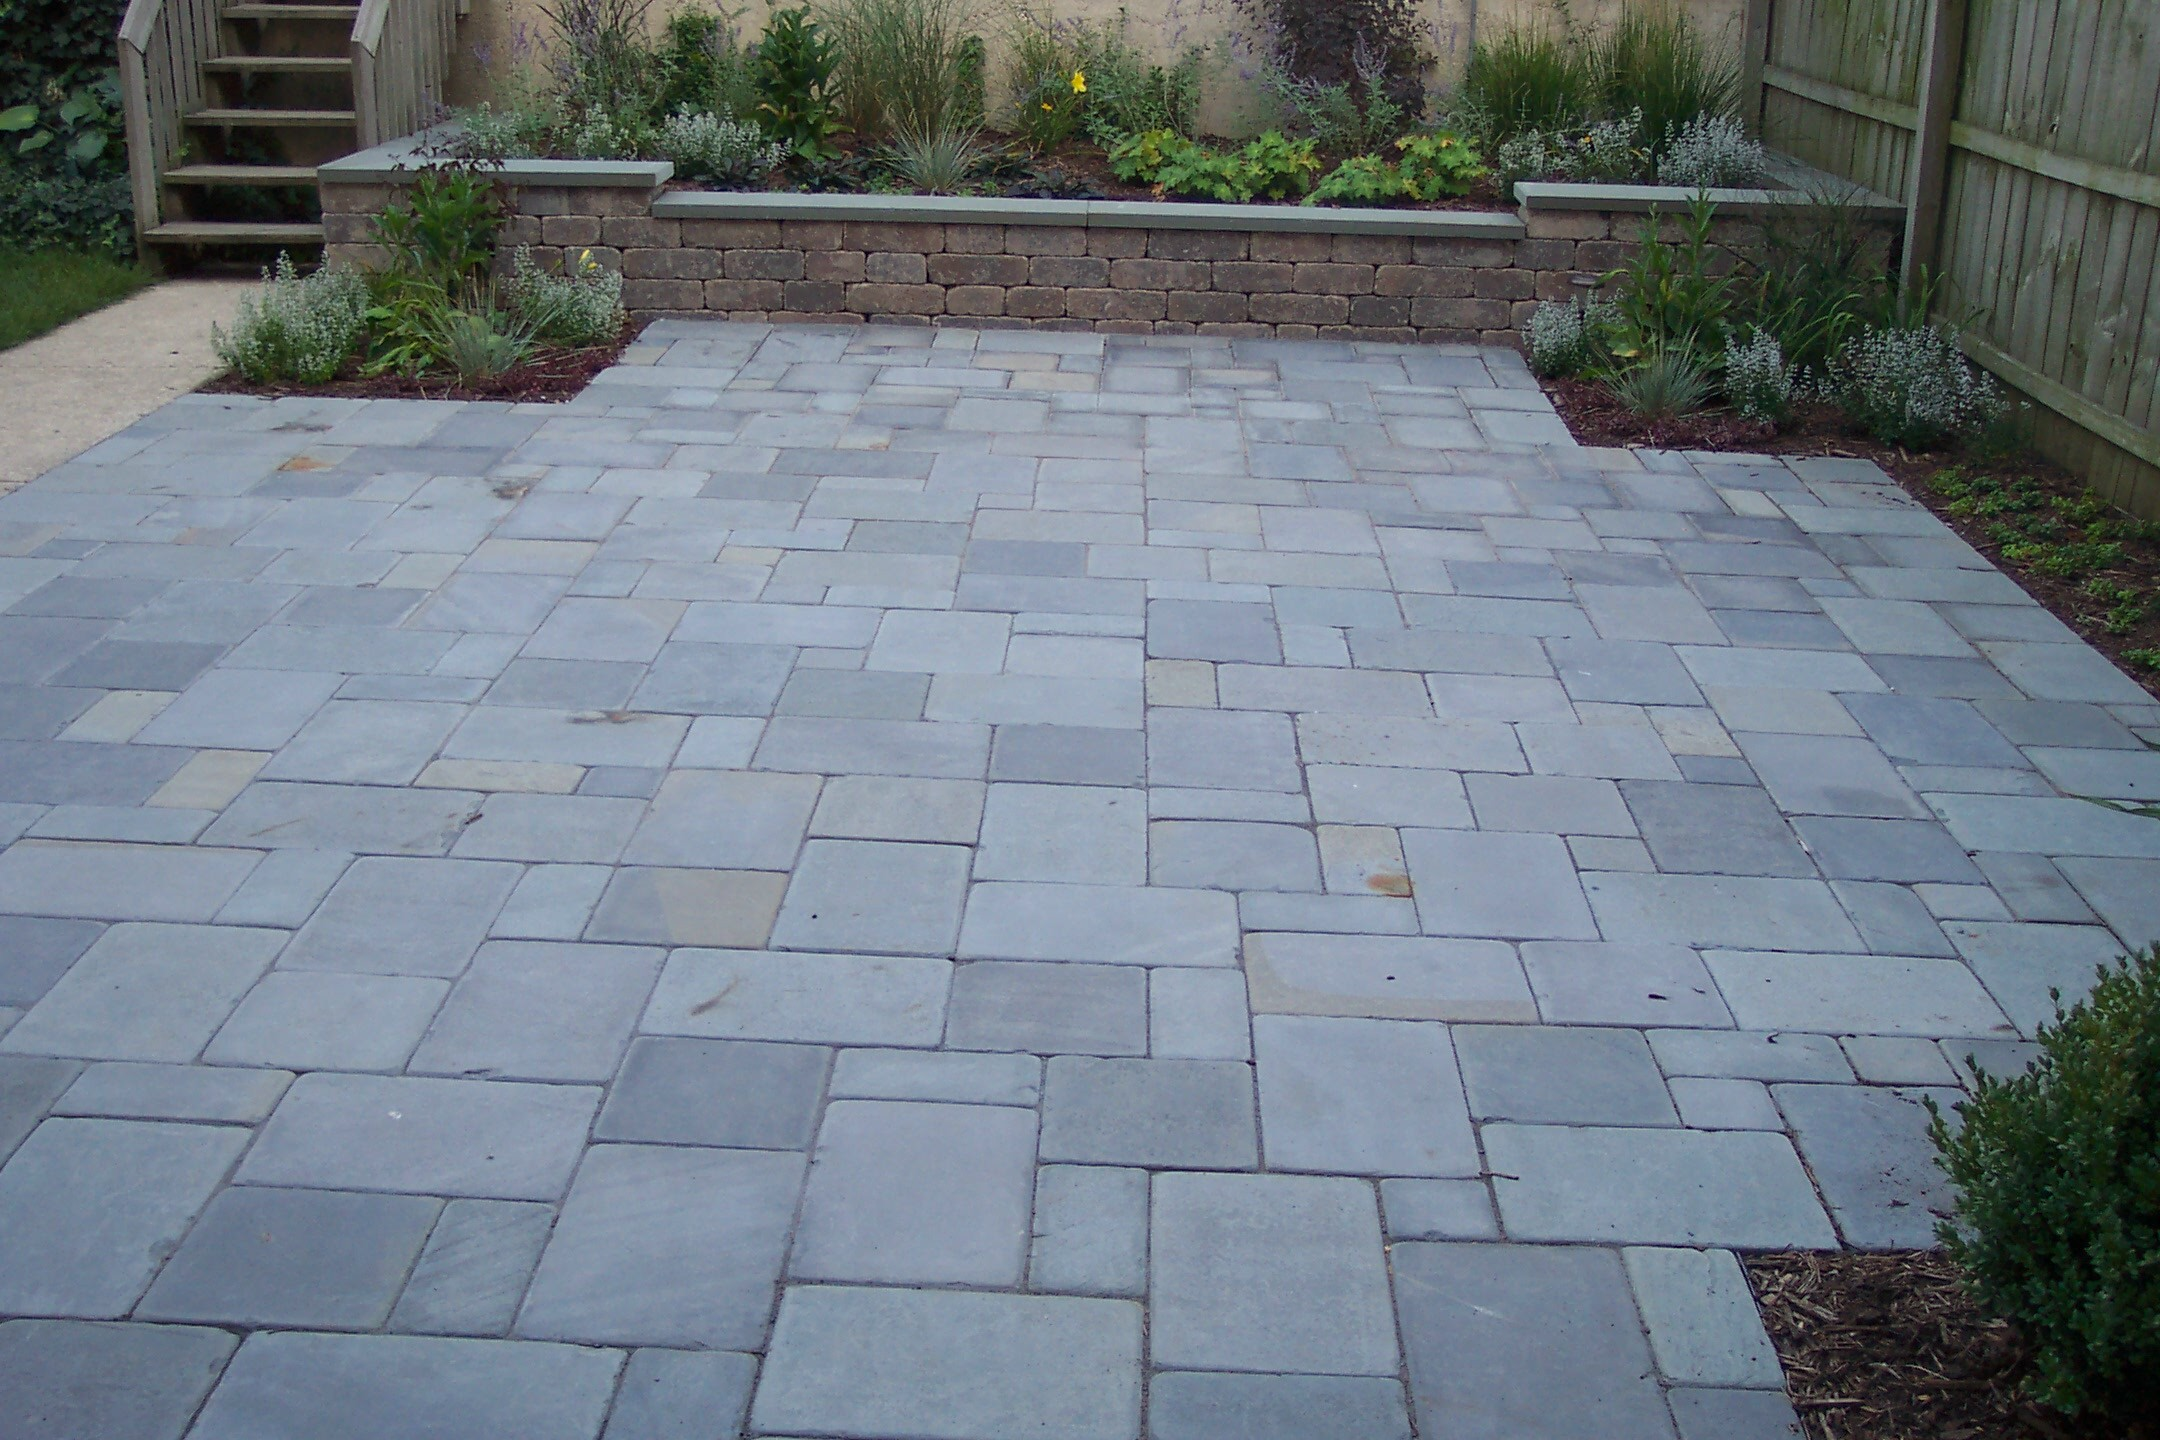 Flagstone Patio With Stone : Backyard on pinterest flagstone patio and